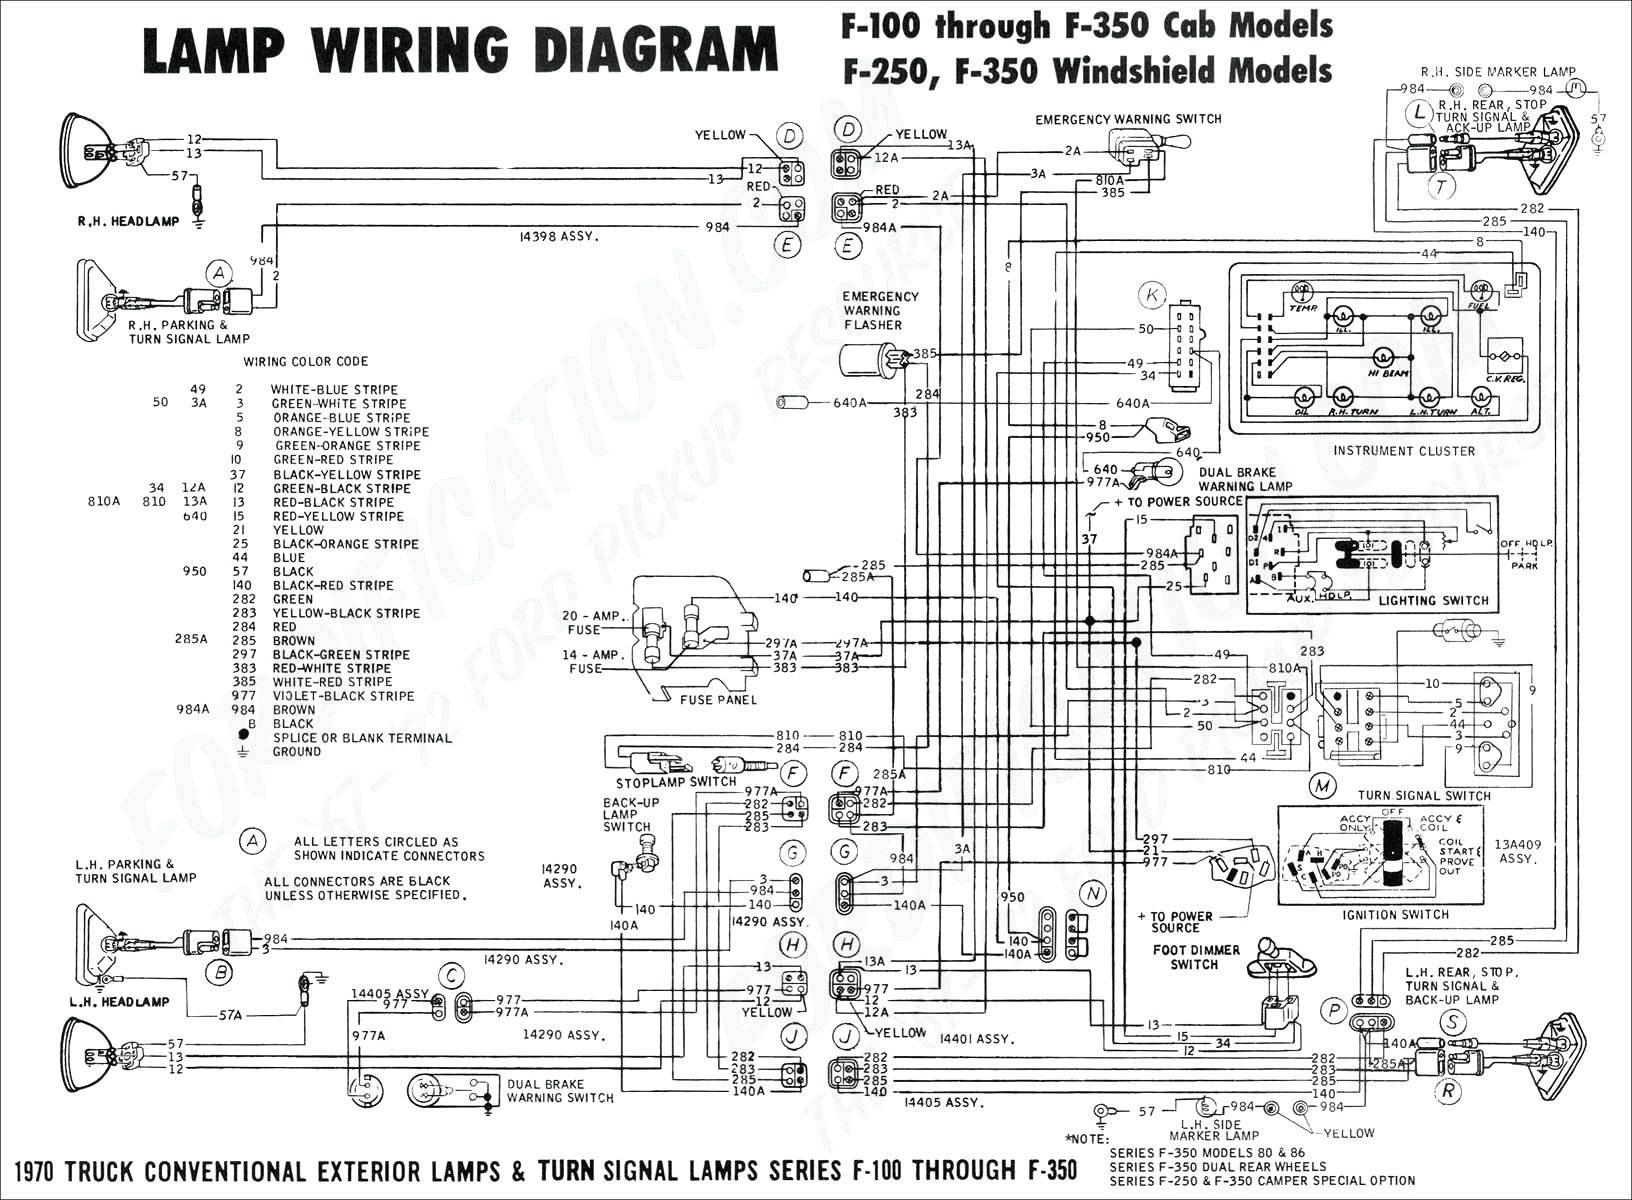 2000 Buick Lesabre Engine Diagram 2003 Buick Lesabre Radio Wiring Diagram Book F53 Wiring Radio Of 2000 Buick Lesabre Engine Diagram 2003 Buick Lesabre Radio Wiring Diagram Book F53 Wiring Radio